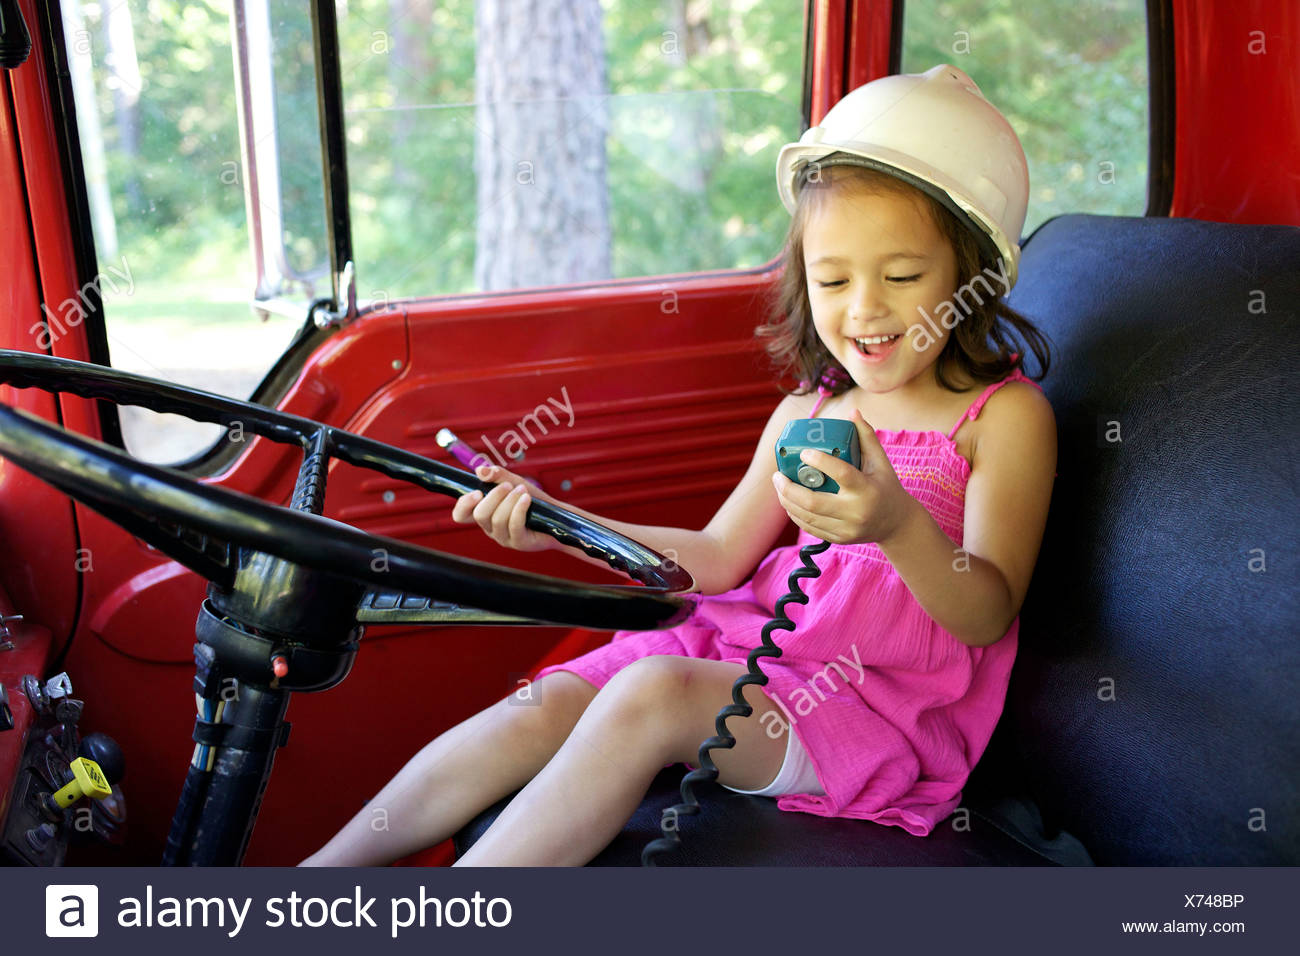 A young girl plays with a car's radio. - Stock Image